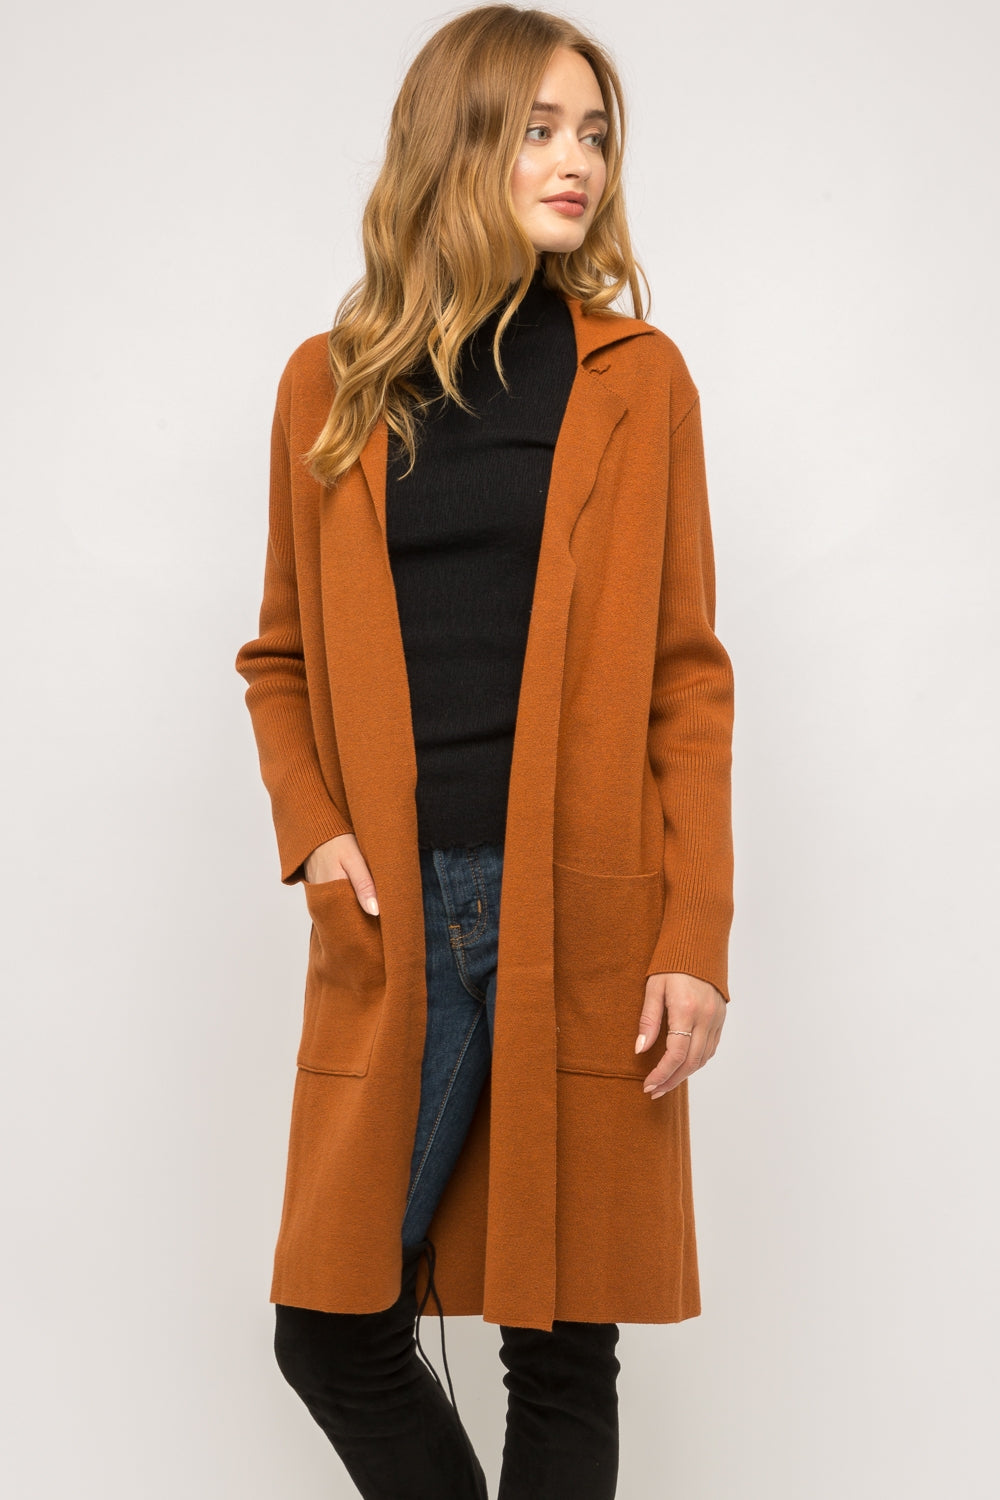 Long Open Collar Cardigan